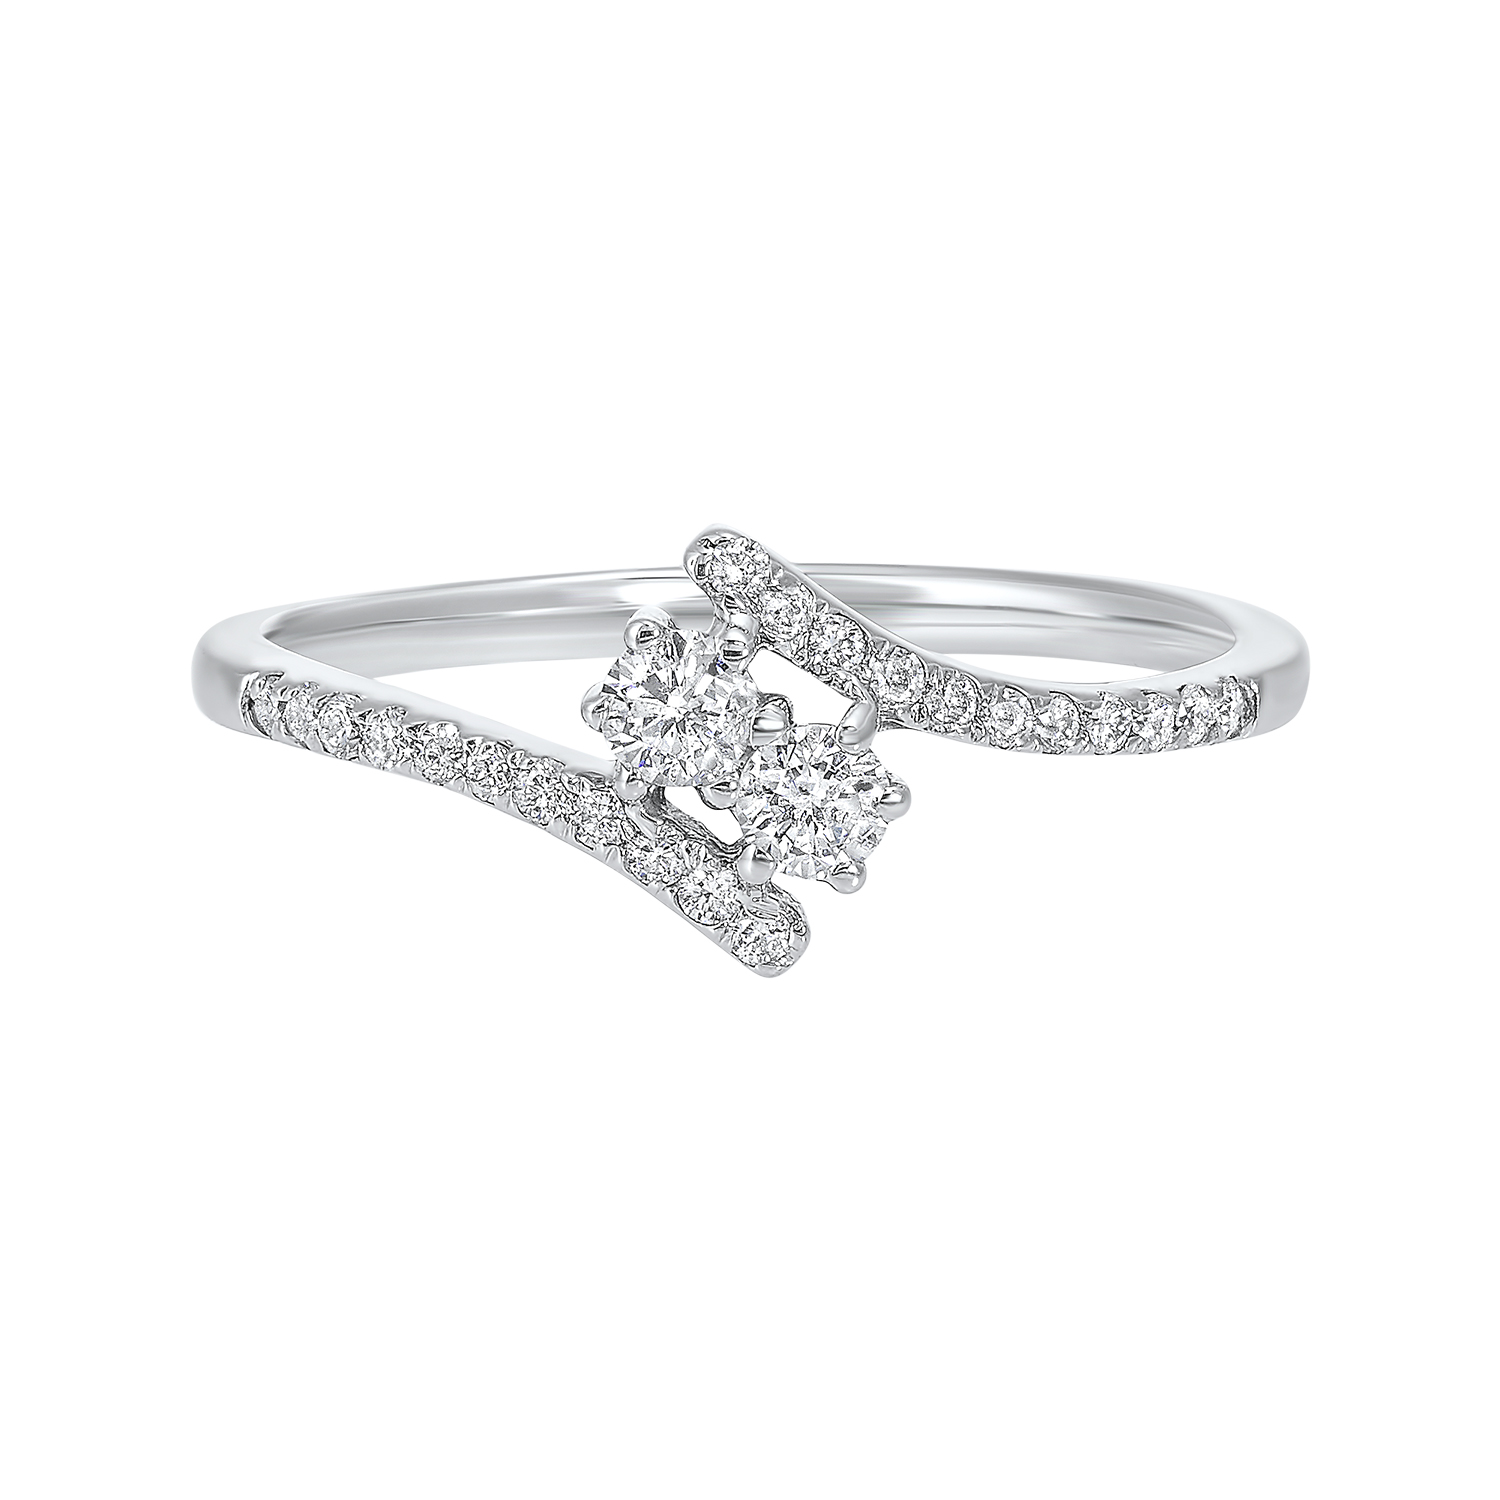 Twogether Two Stone Diamond Ring in 14K White Gold (1/4 ct. tw.) Moseley Diamond Showcase Inc Columbia, SC